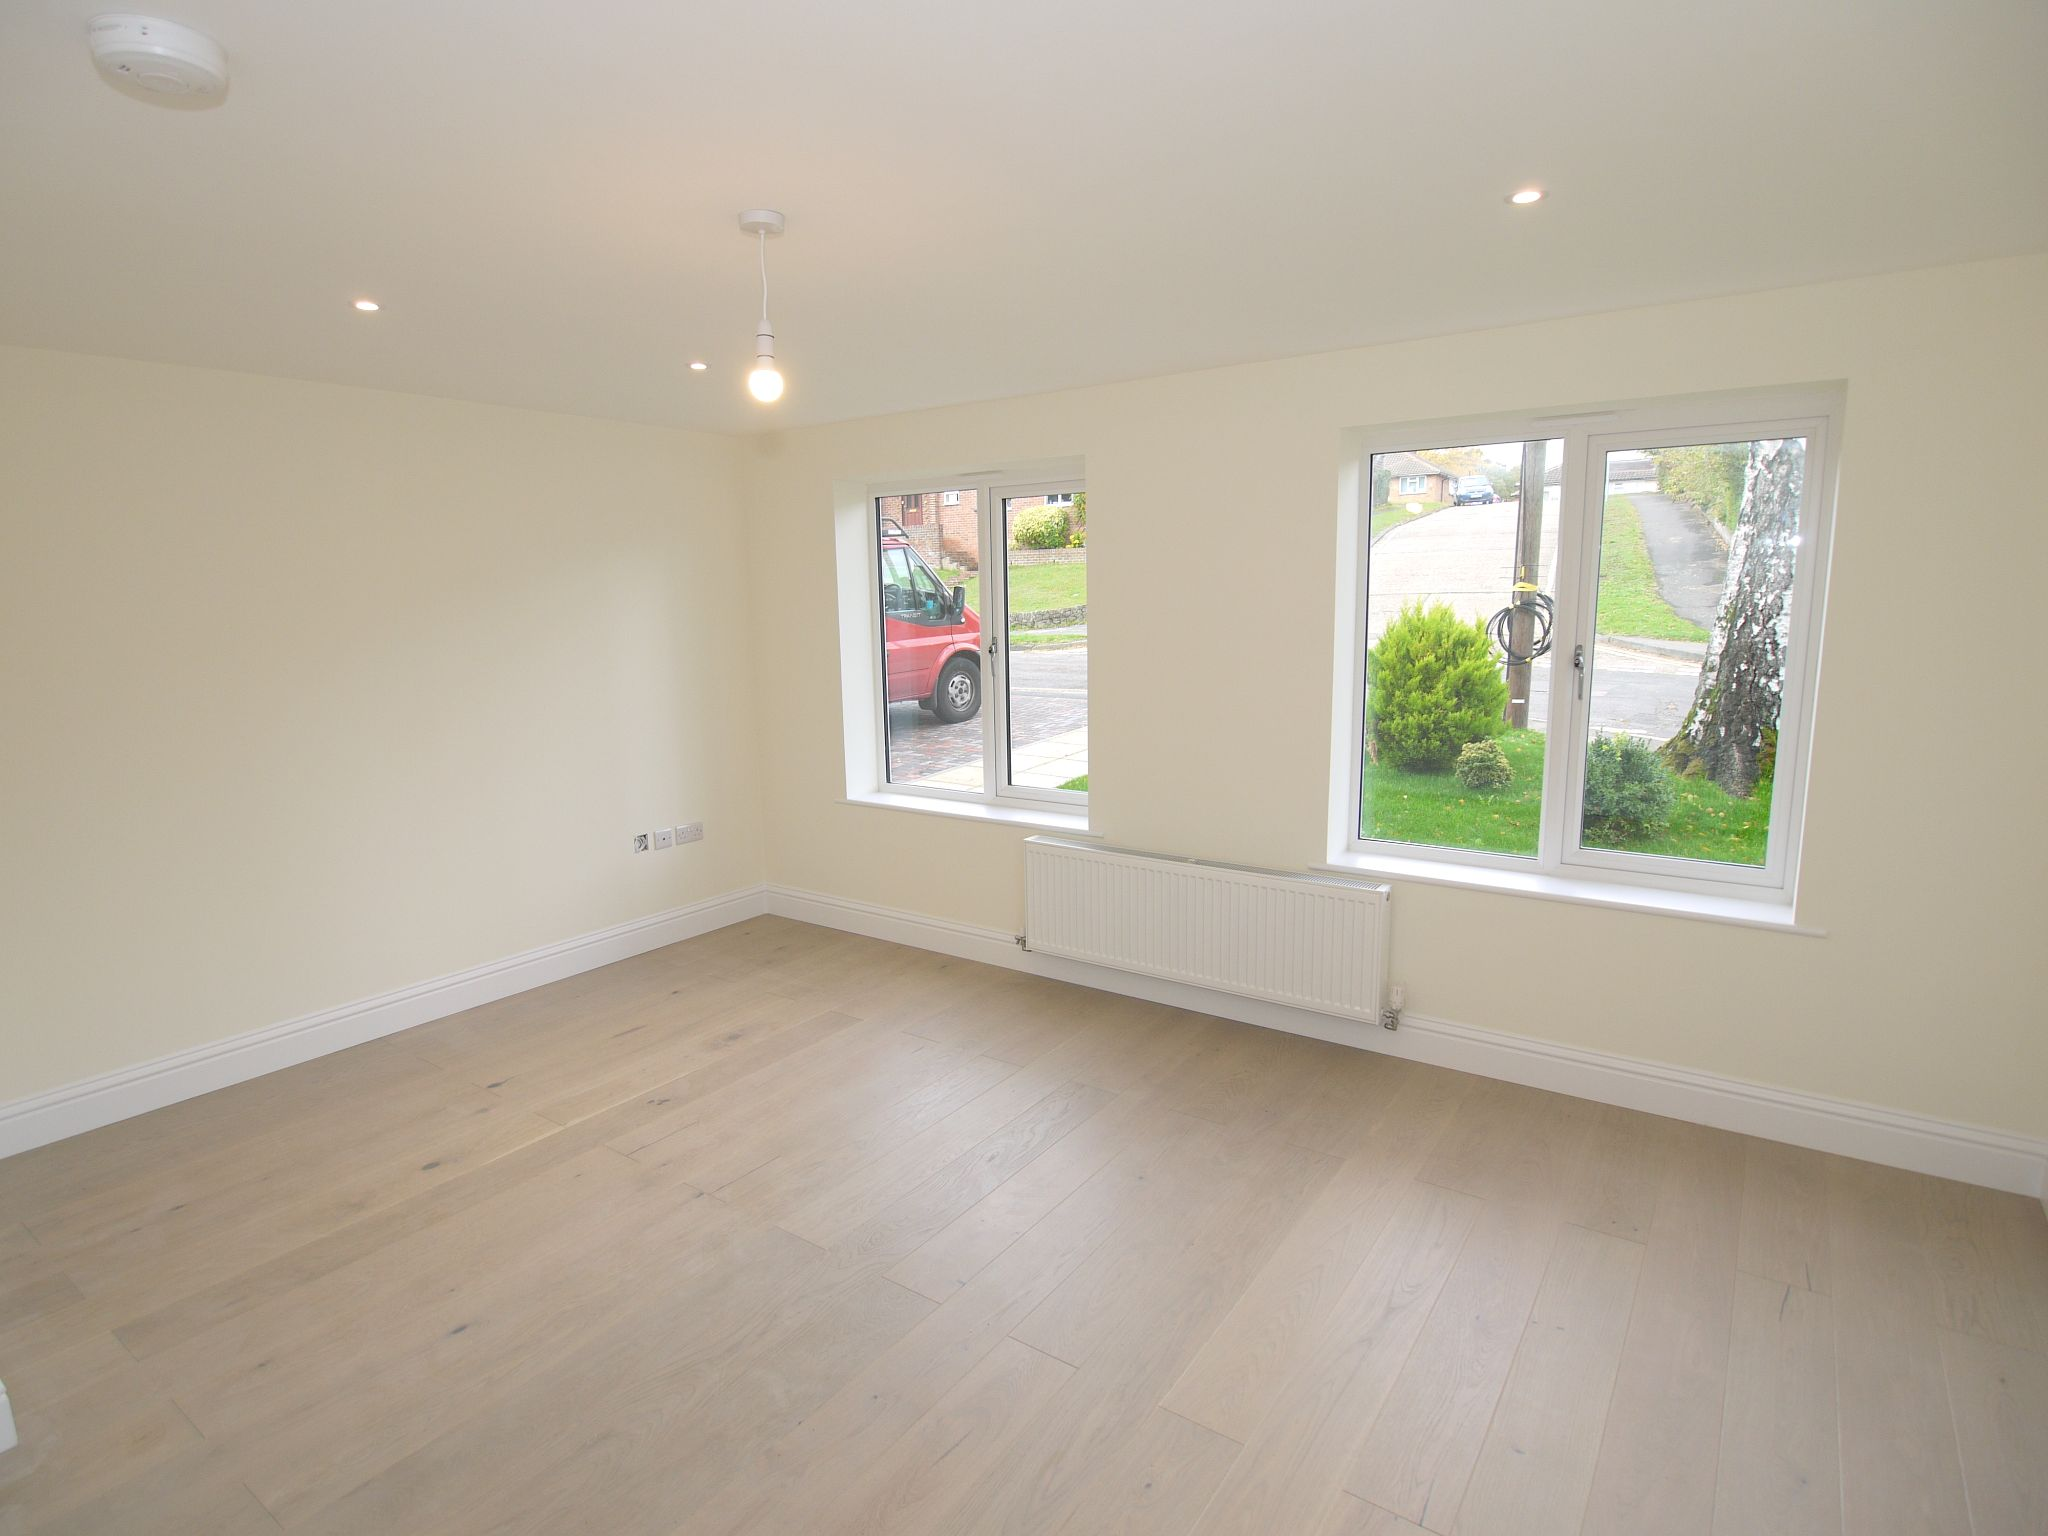 2 bedroom detached house Sale Agreed in Sevenoaks - Photograph 5